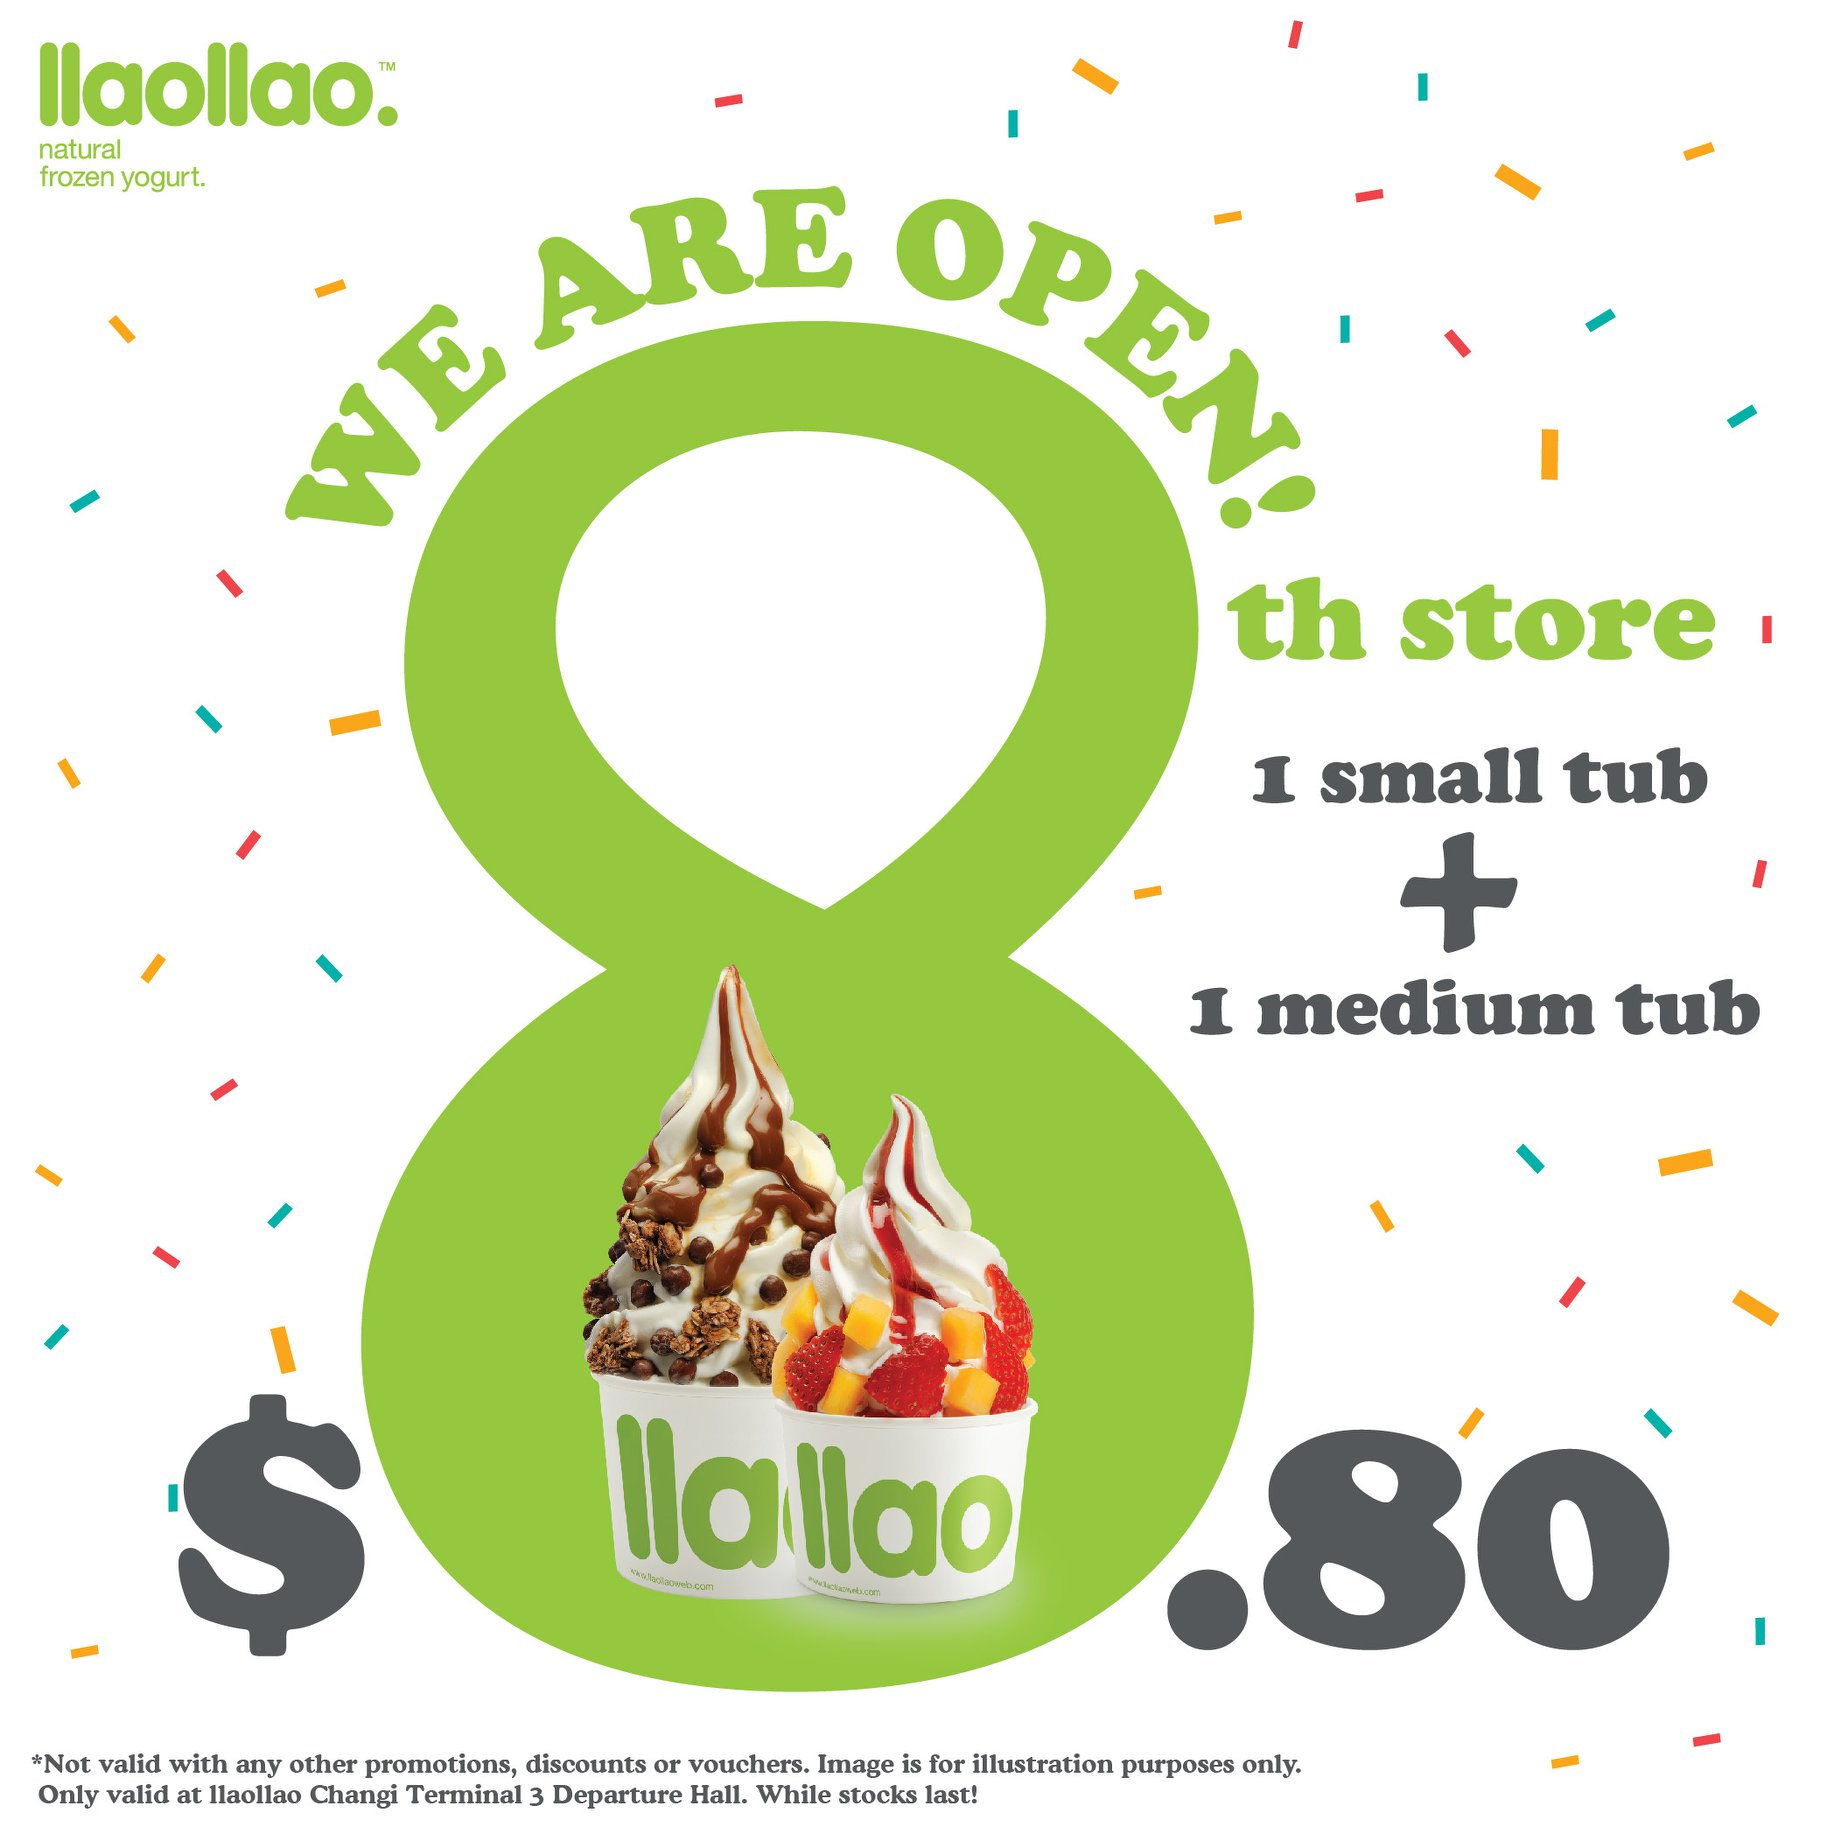 llaollao Singapore 8th Store Opening $8.80 Promotion 7-9 Oct 2019 | Why Not Deals & Promotions